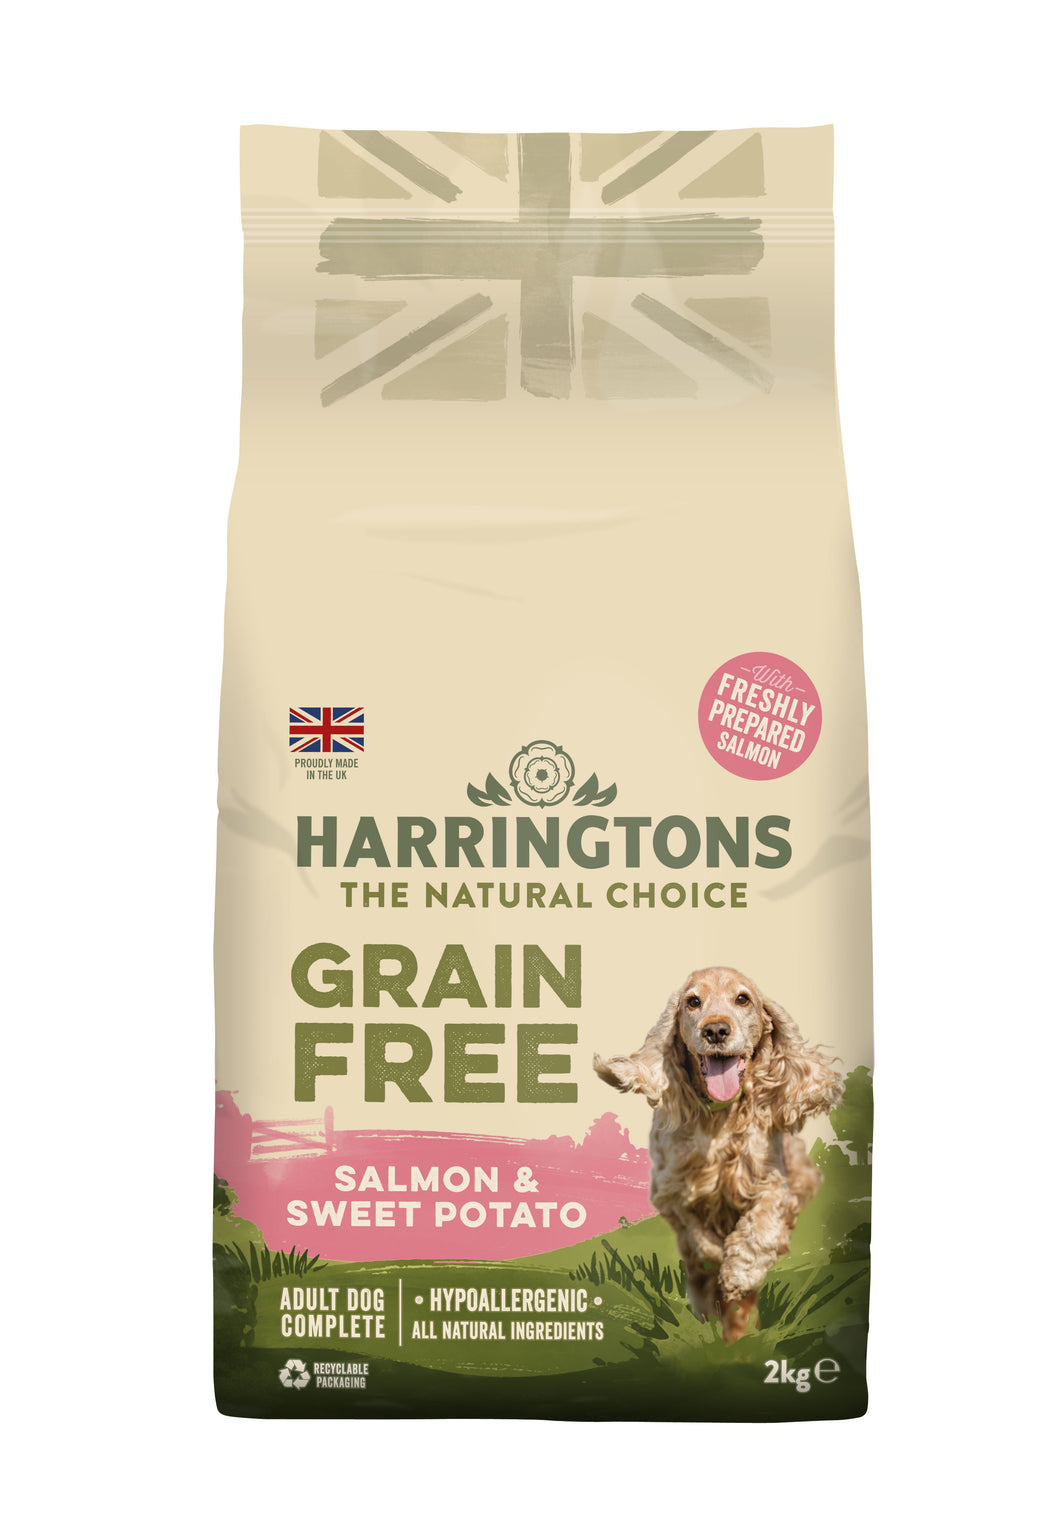 Grain Free Salmon & Sweet Potato Dry Dog Food